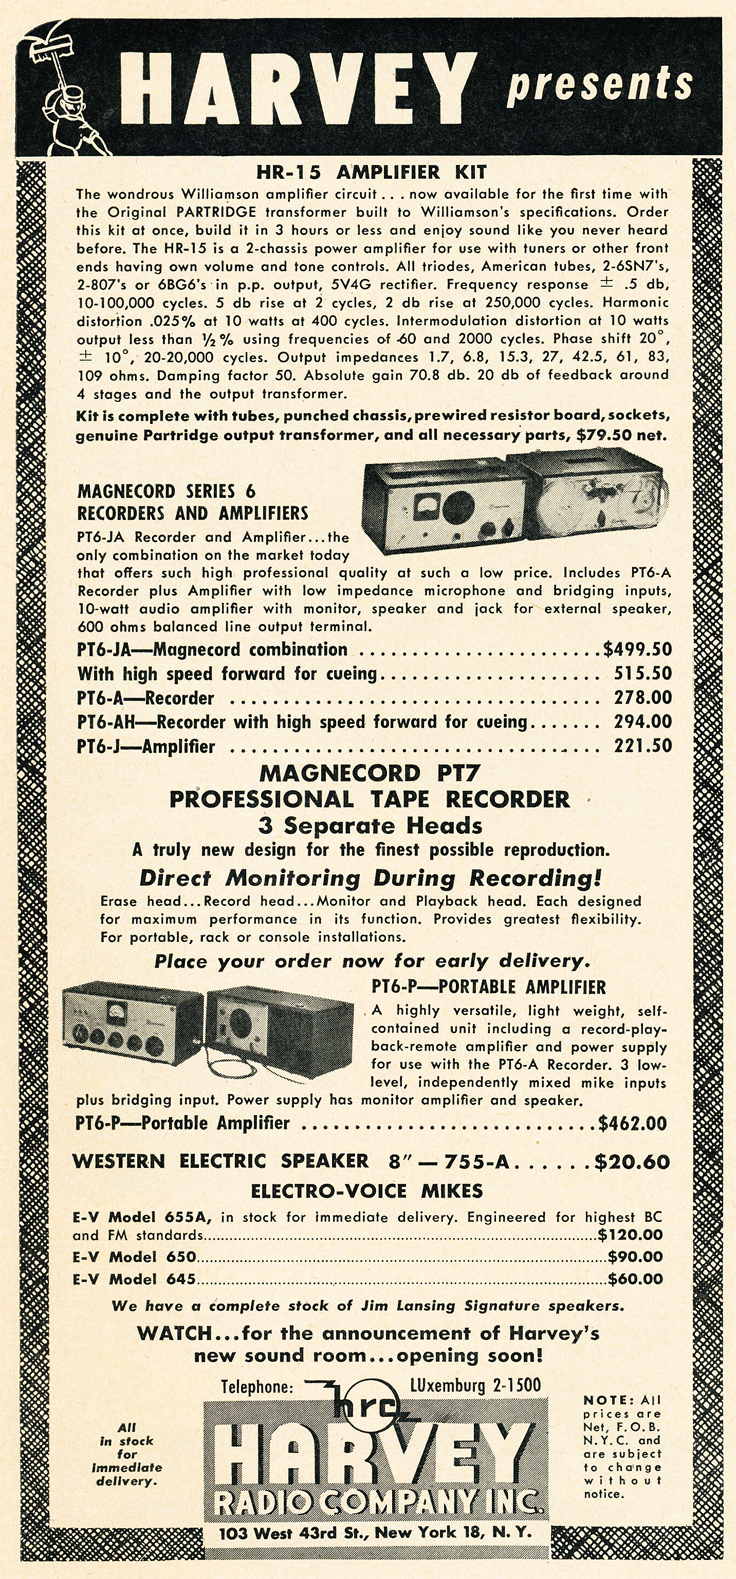 1950 Harvey advertisement for Magnecord tape recorders in Reel2ReelTexas.com's vintage recording collection